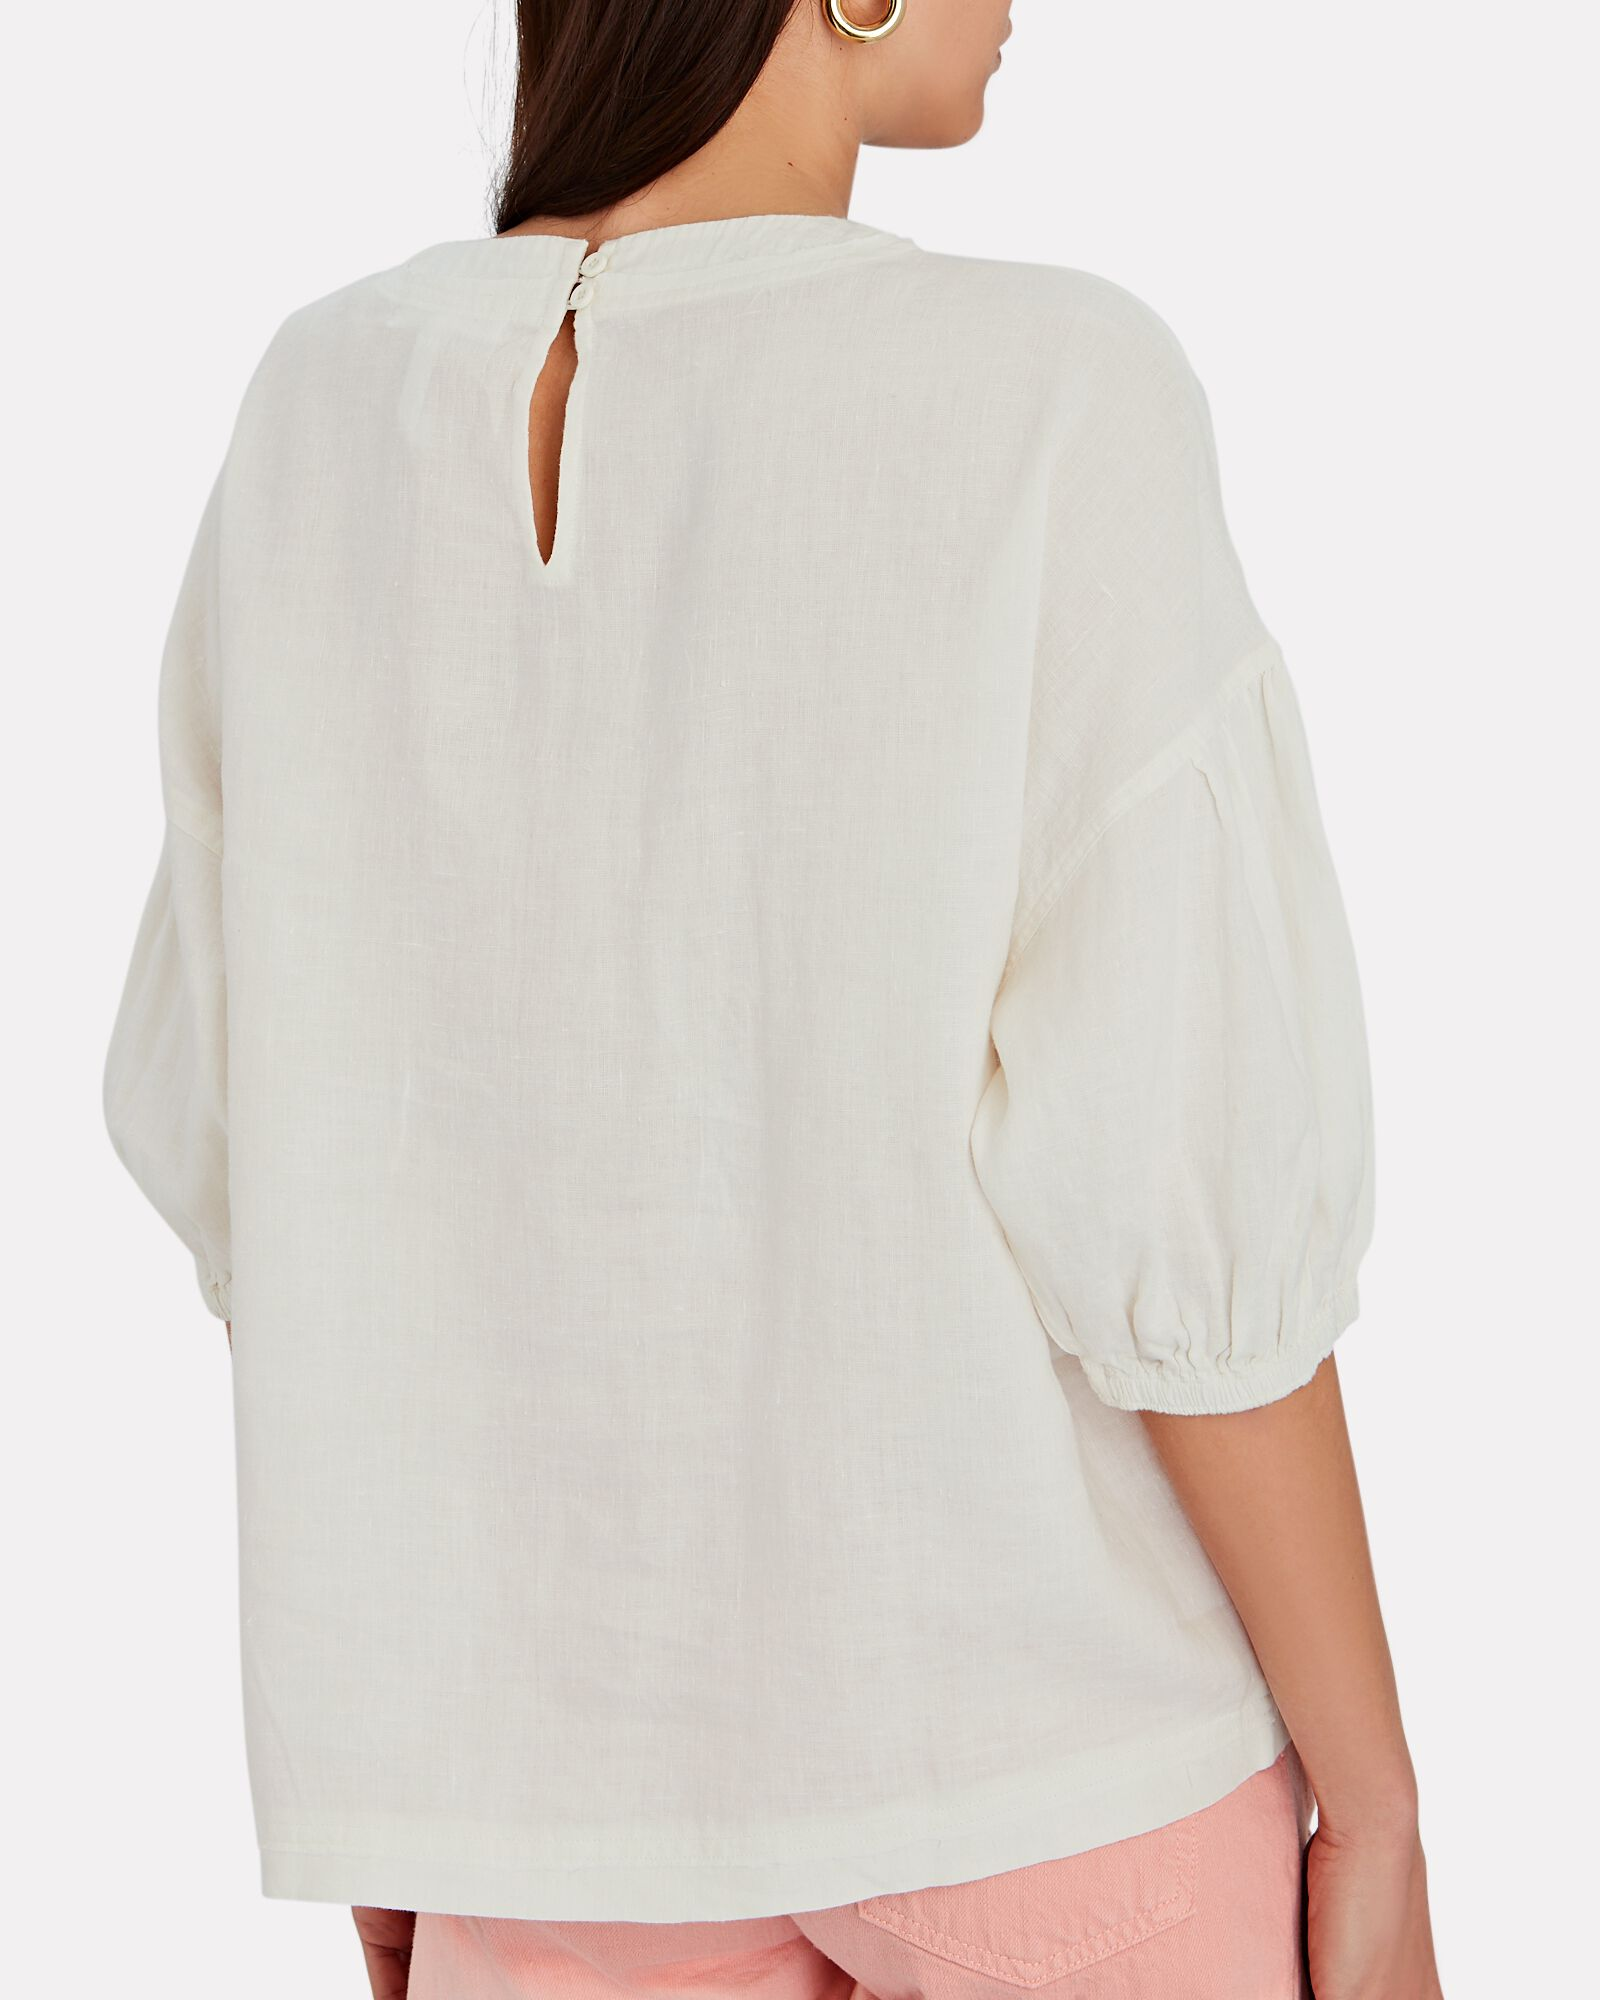 Delle Linen Puff Sleeve Top, WHITE, hi-res